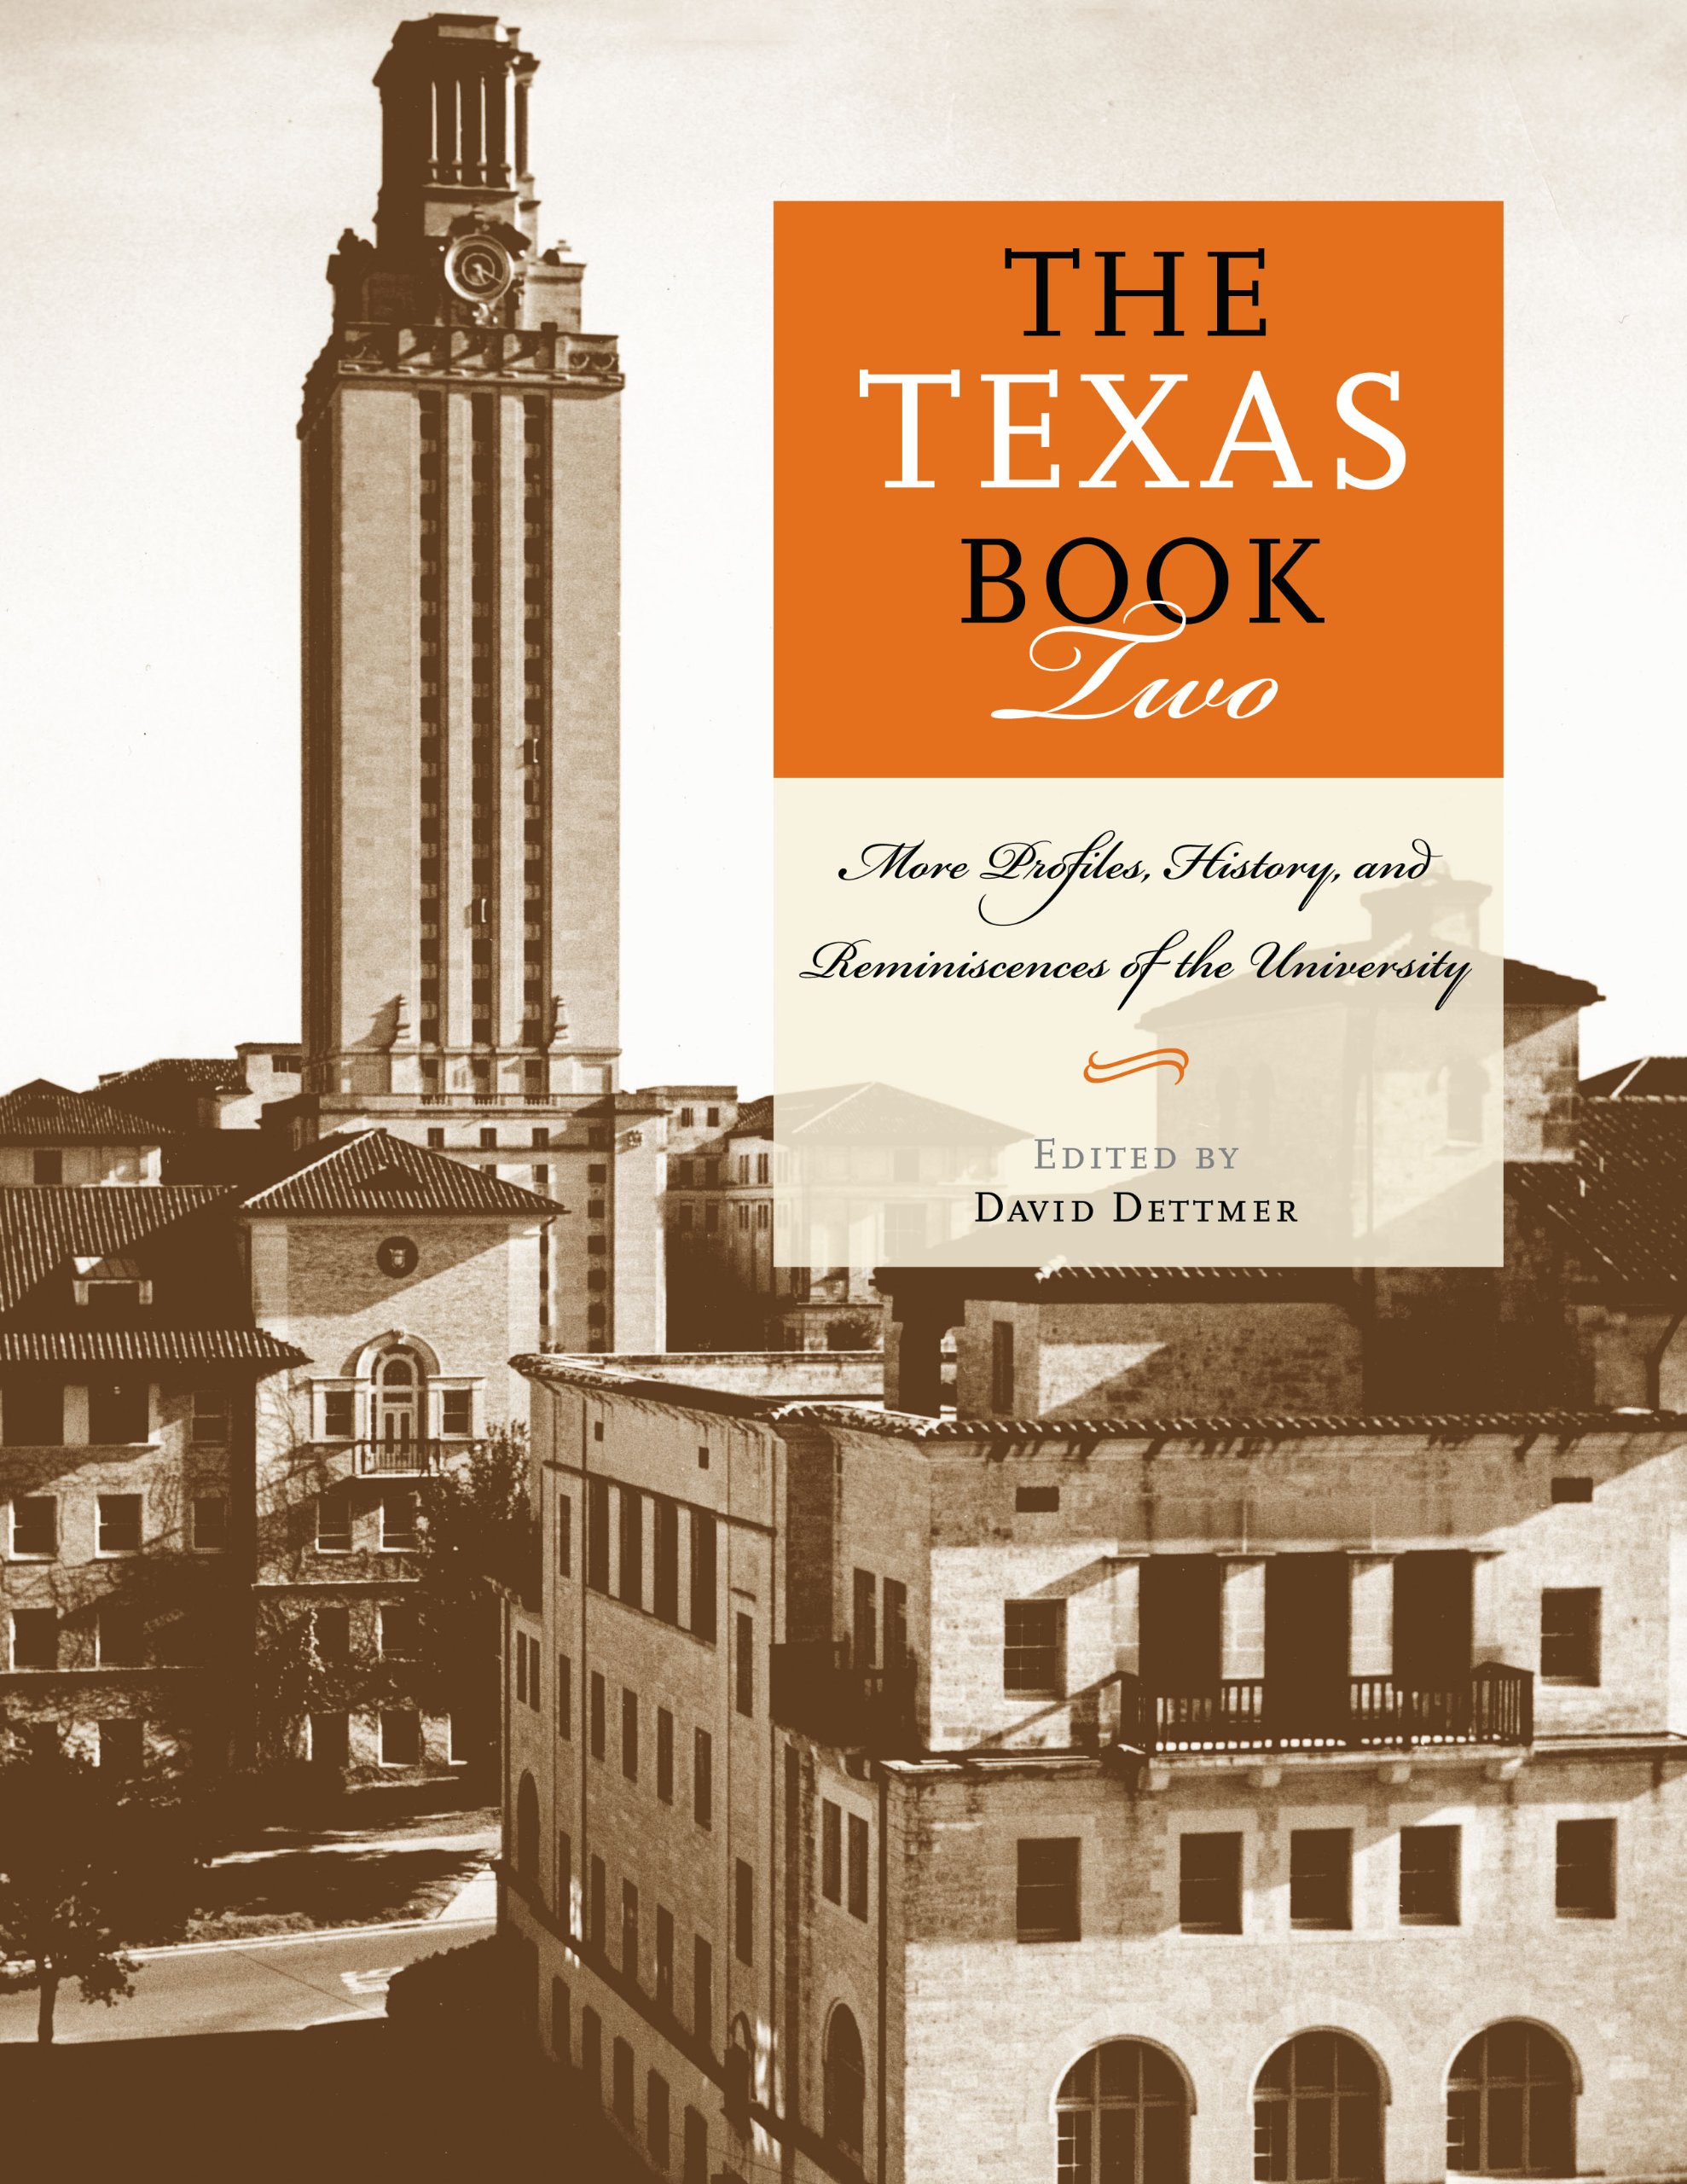 The Texas Book